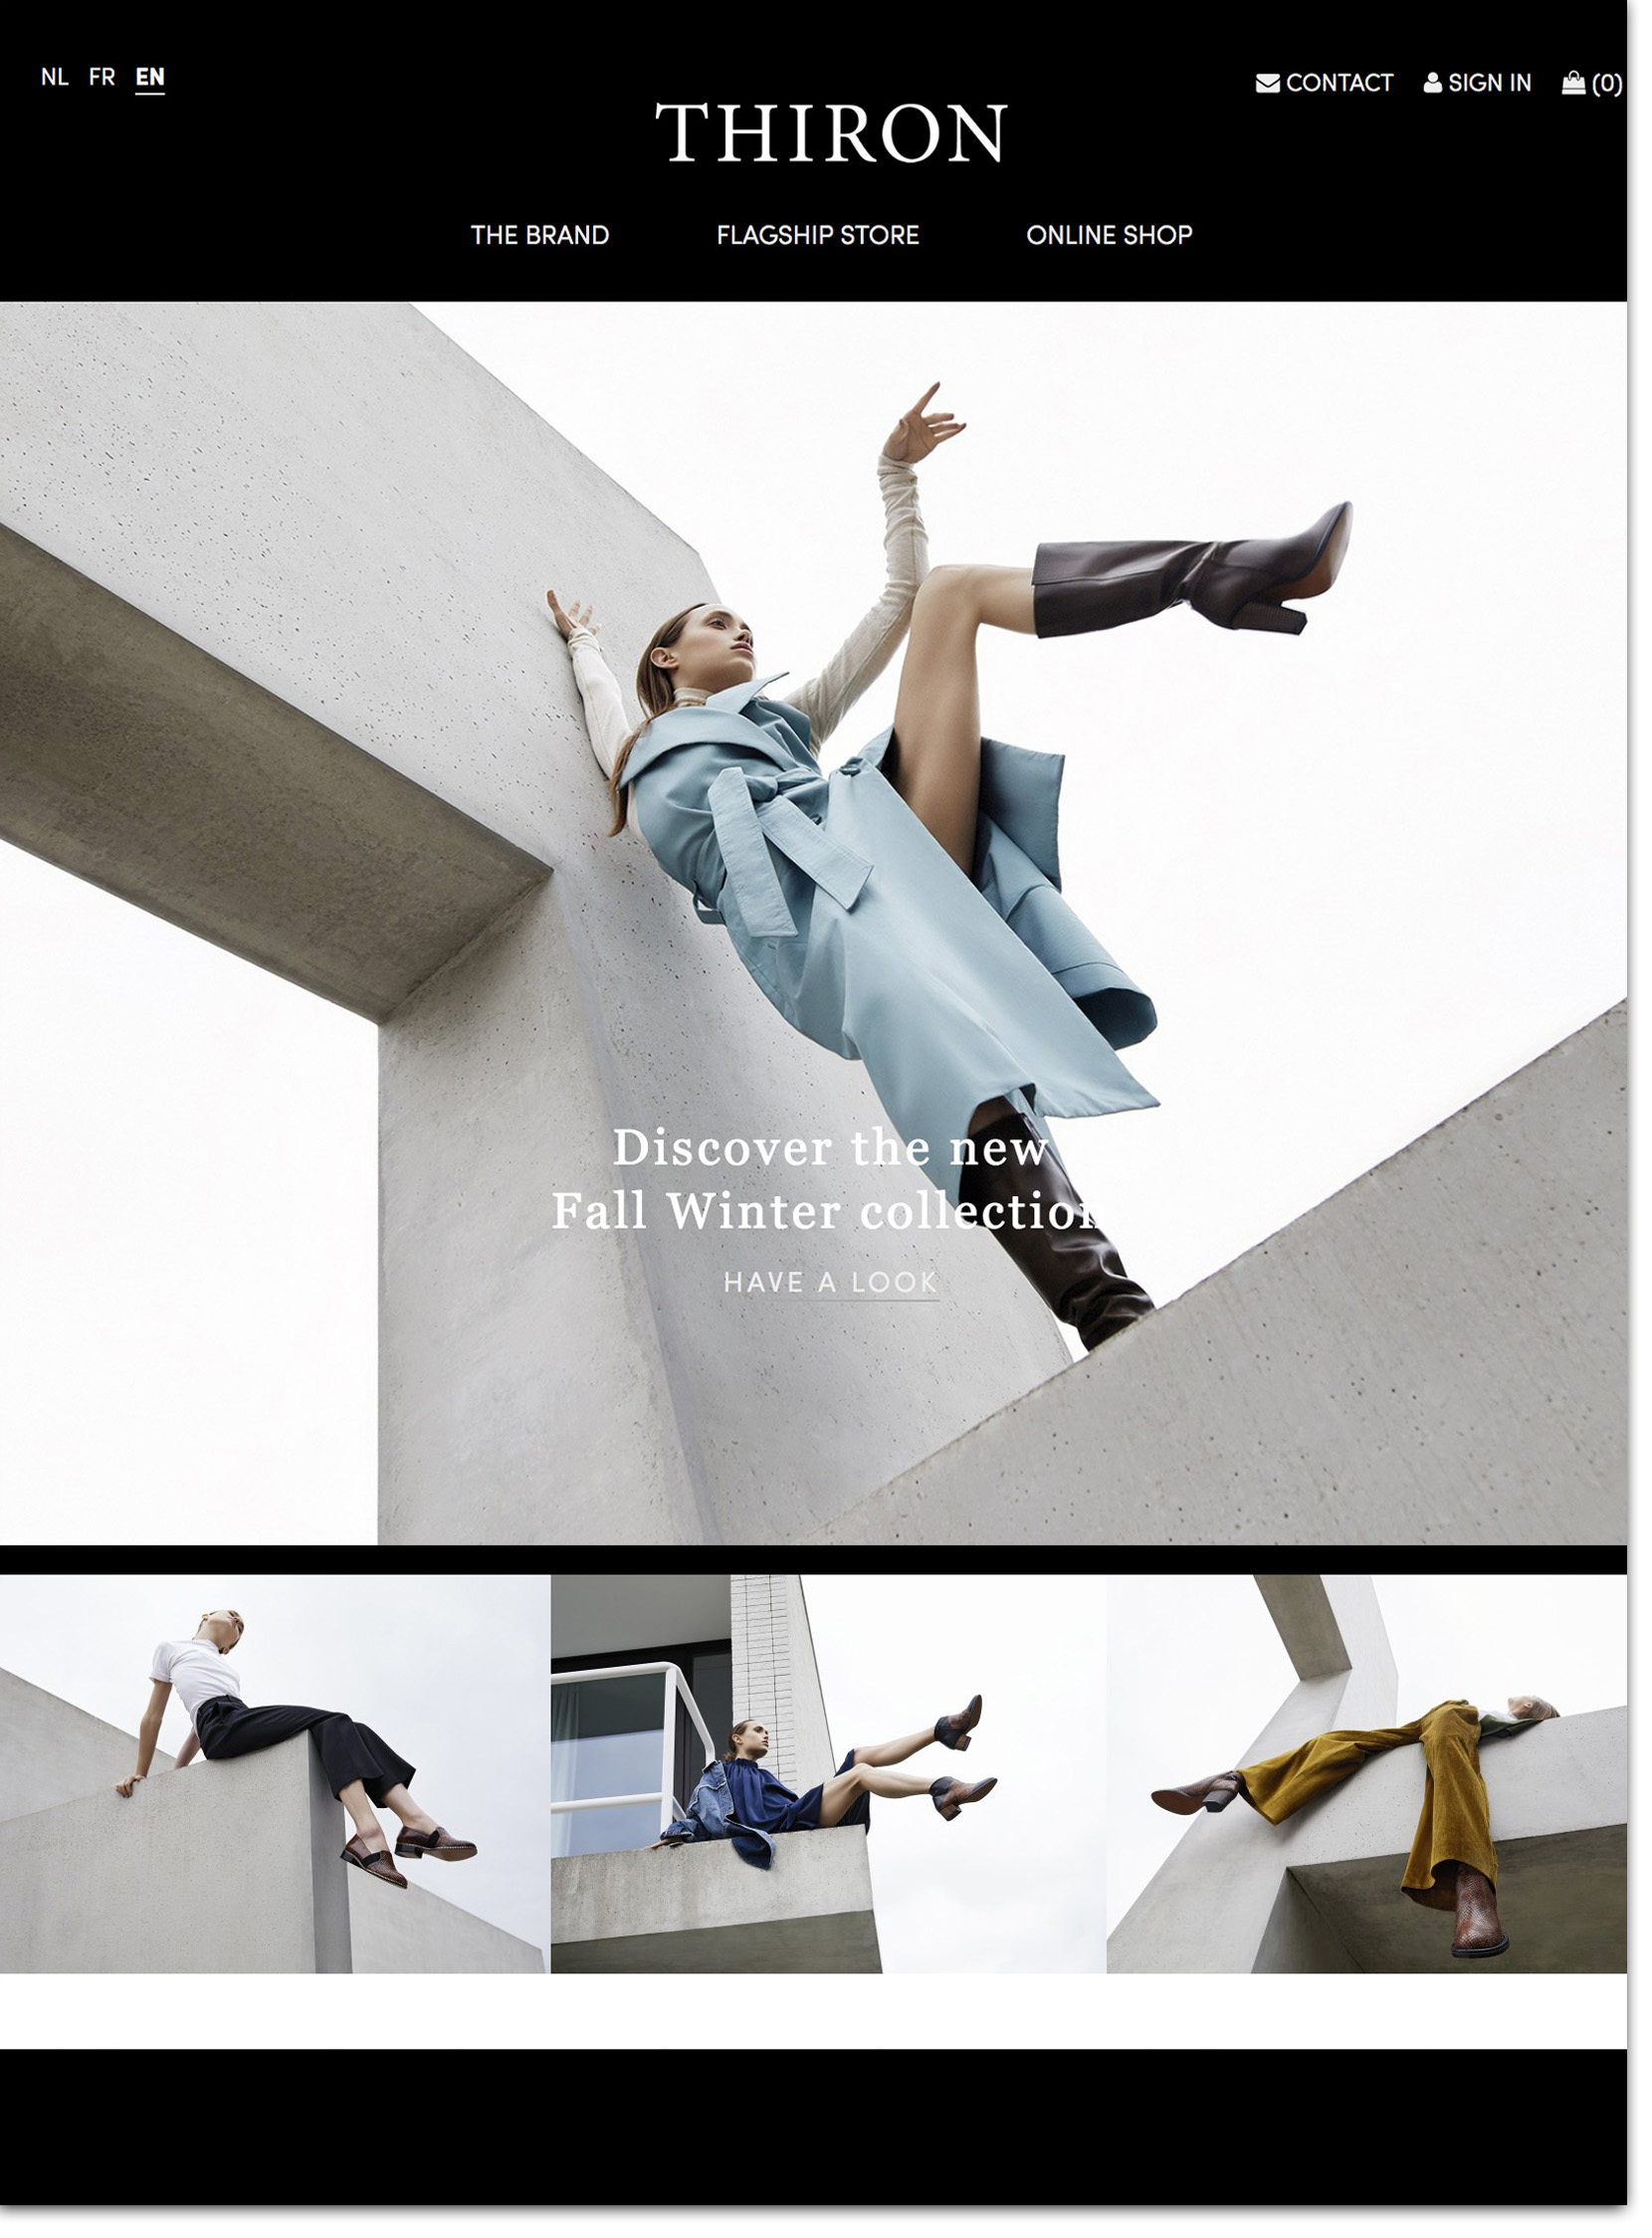 #VillaCD in the Fall / Winter '18-'19 Fashion Campaign for Thiron  by Marie Wynants